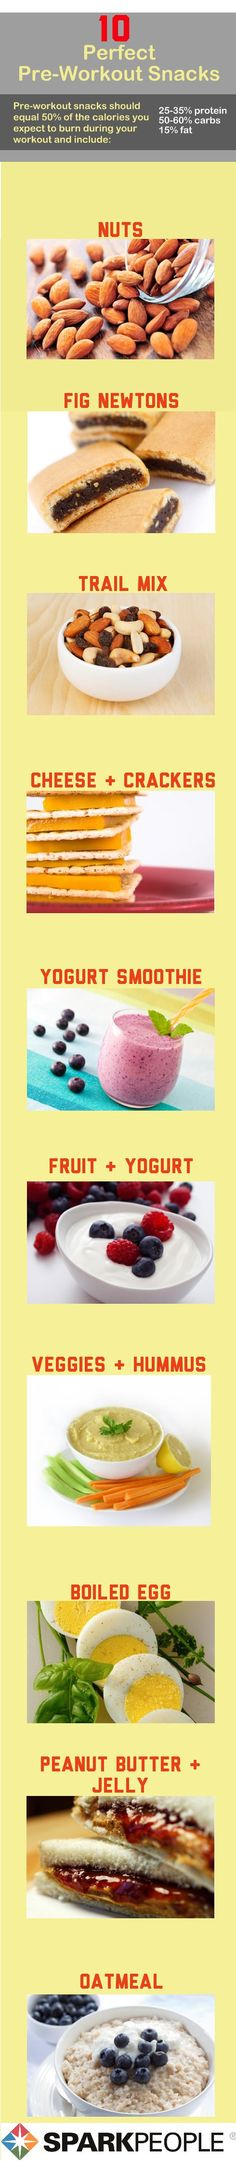 eat before your workout :) Pre workout foods